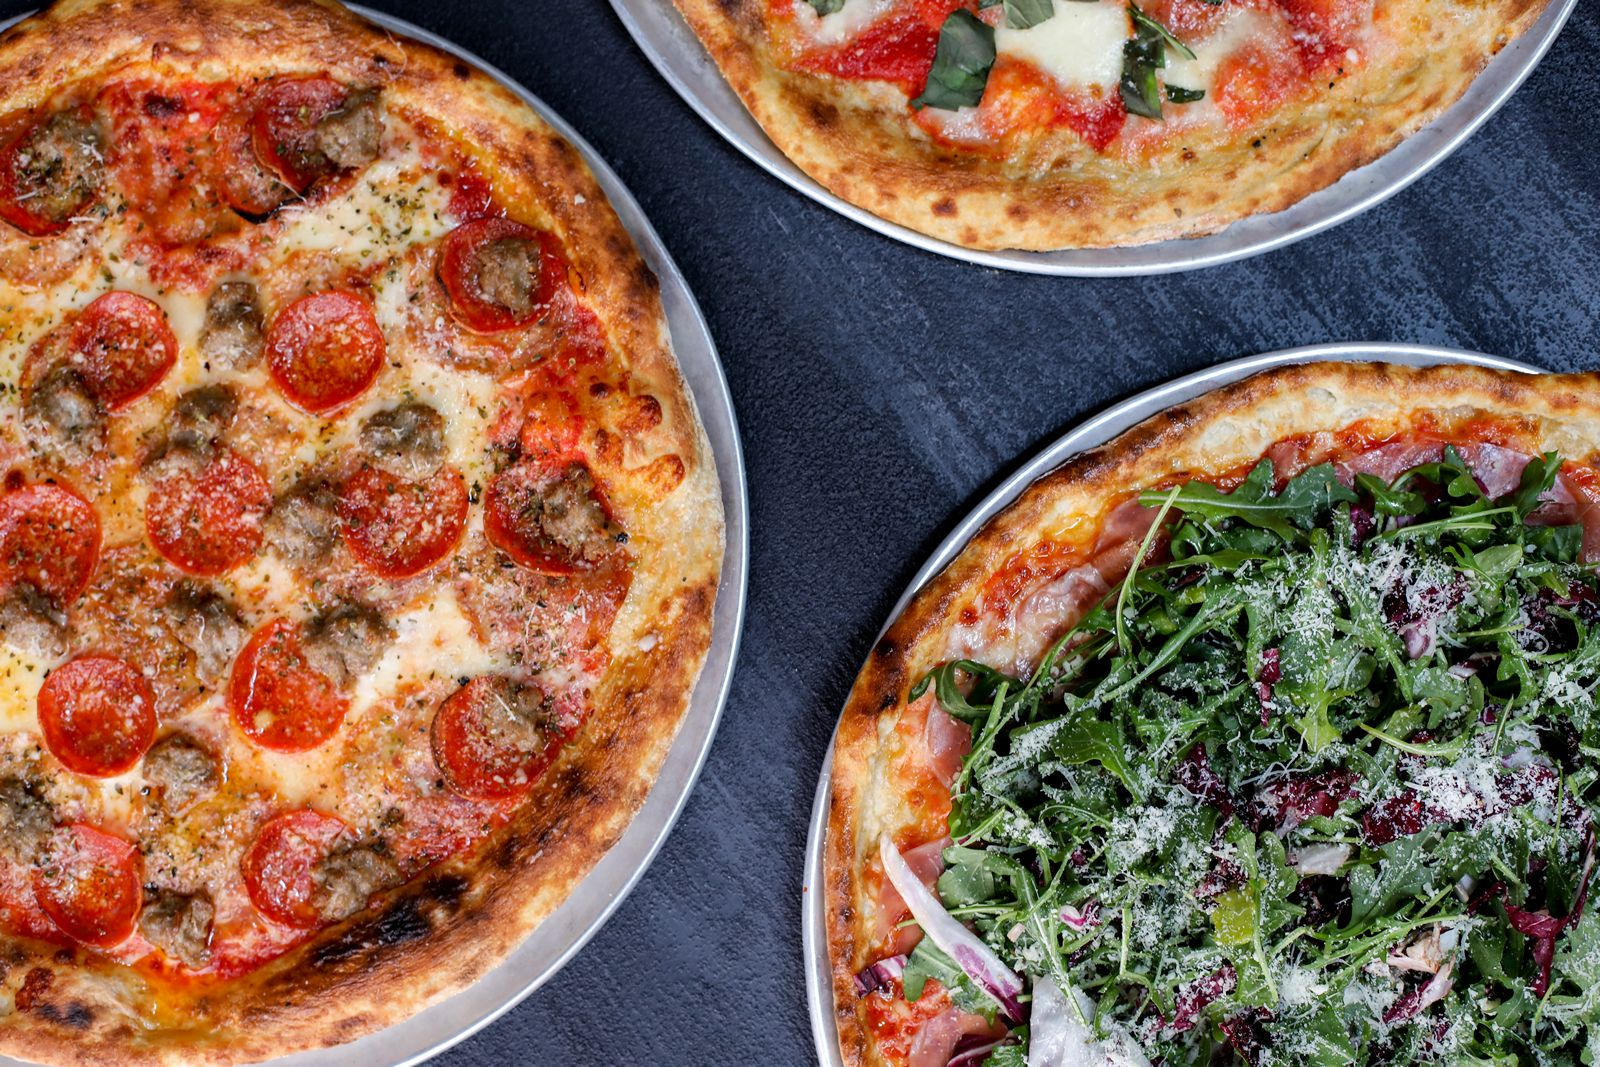 Patxi's Pizza, the full-service restaurant chain known for its mastery of all things pizza served in a family-friendly atmosphere, is celebrating the Grand Opening of its first San Diego location in Hillcrest on Wednesday, October 23. Patxi's has two additional San Diego locations opening later this year in Eastlake and Chula Vista.